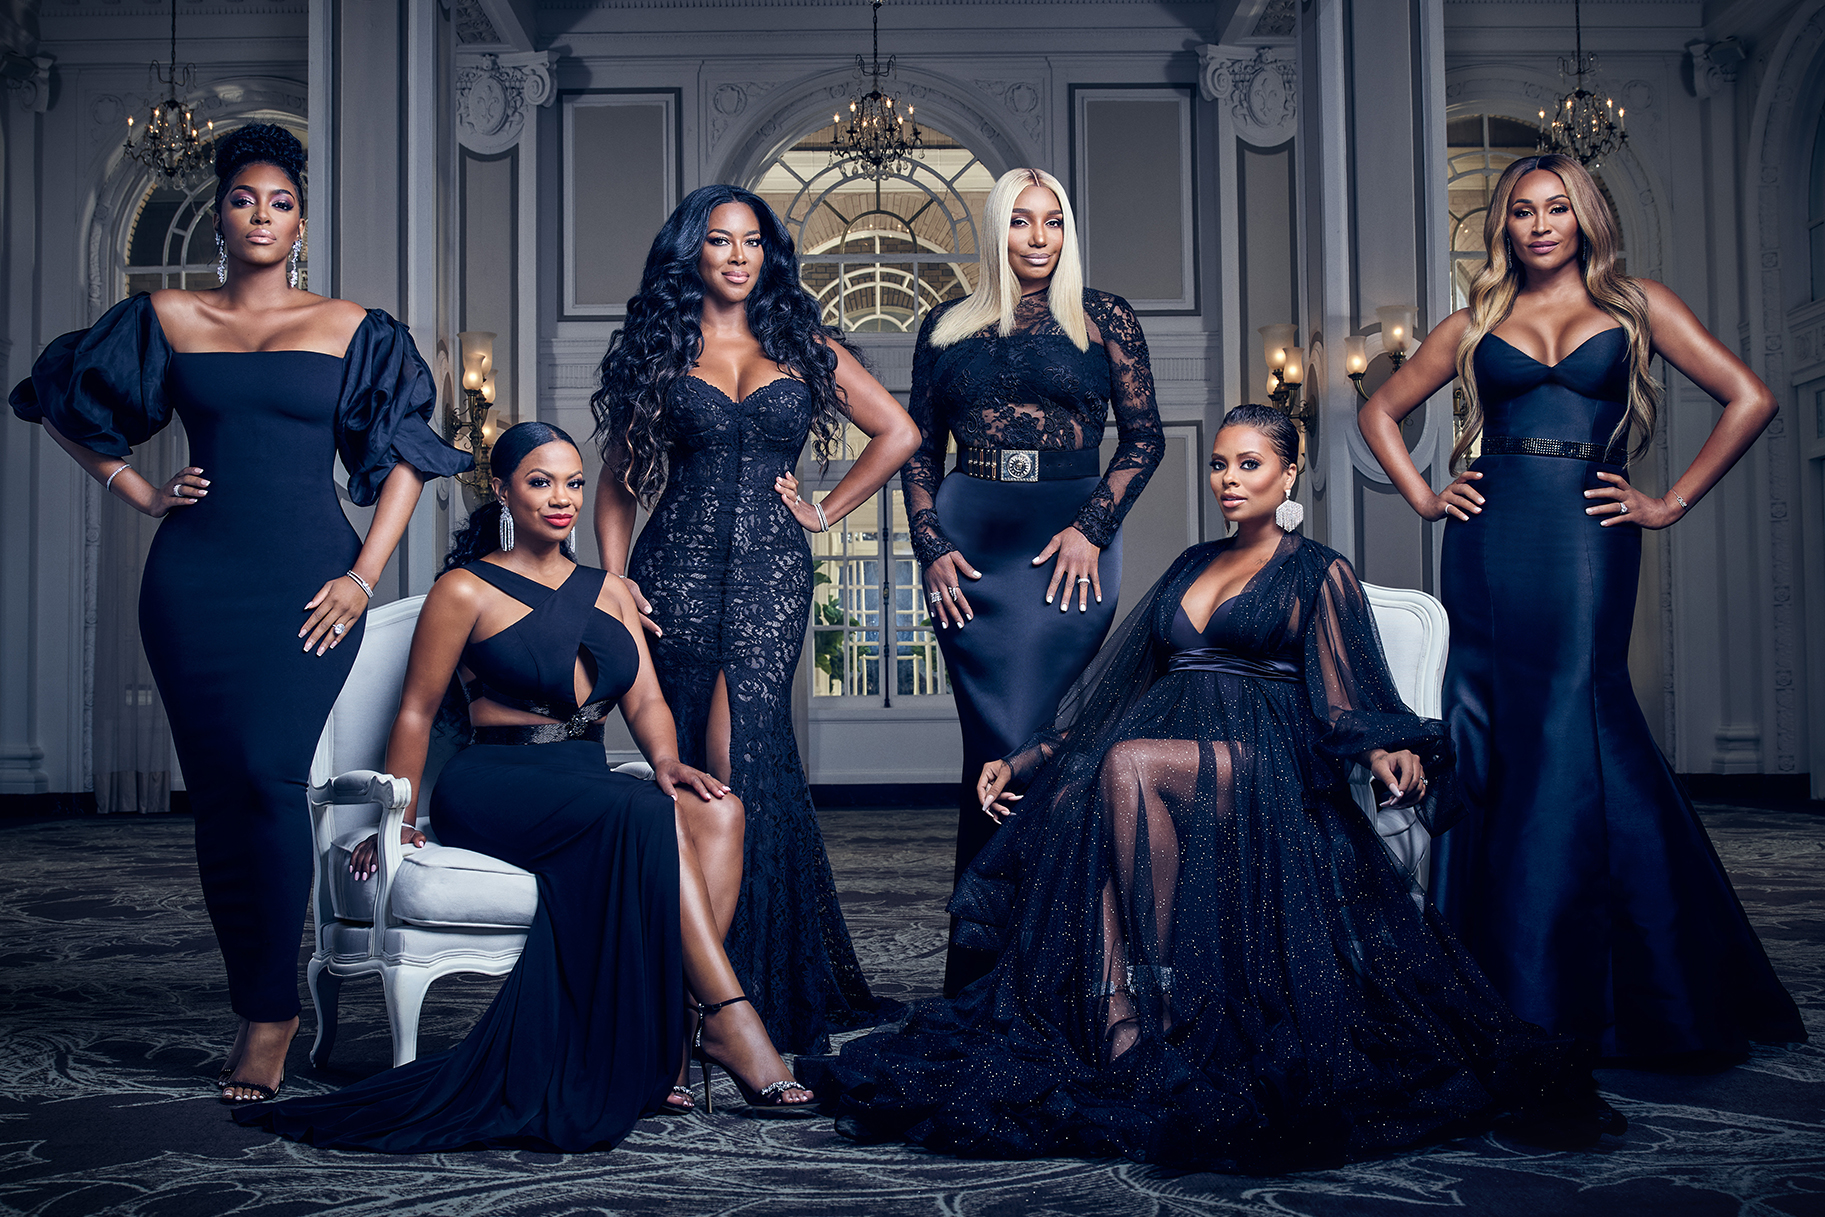 Rhoa Reunion Postponed Coronavirus